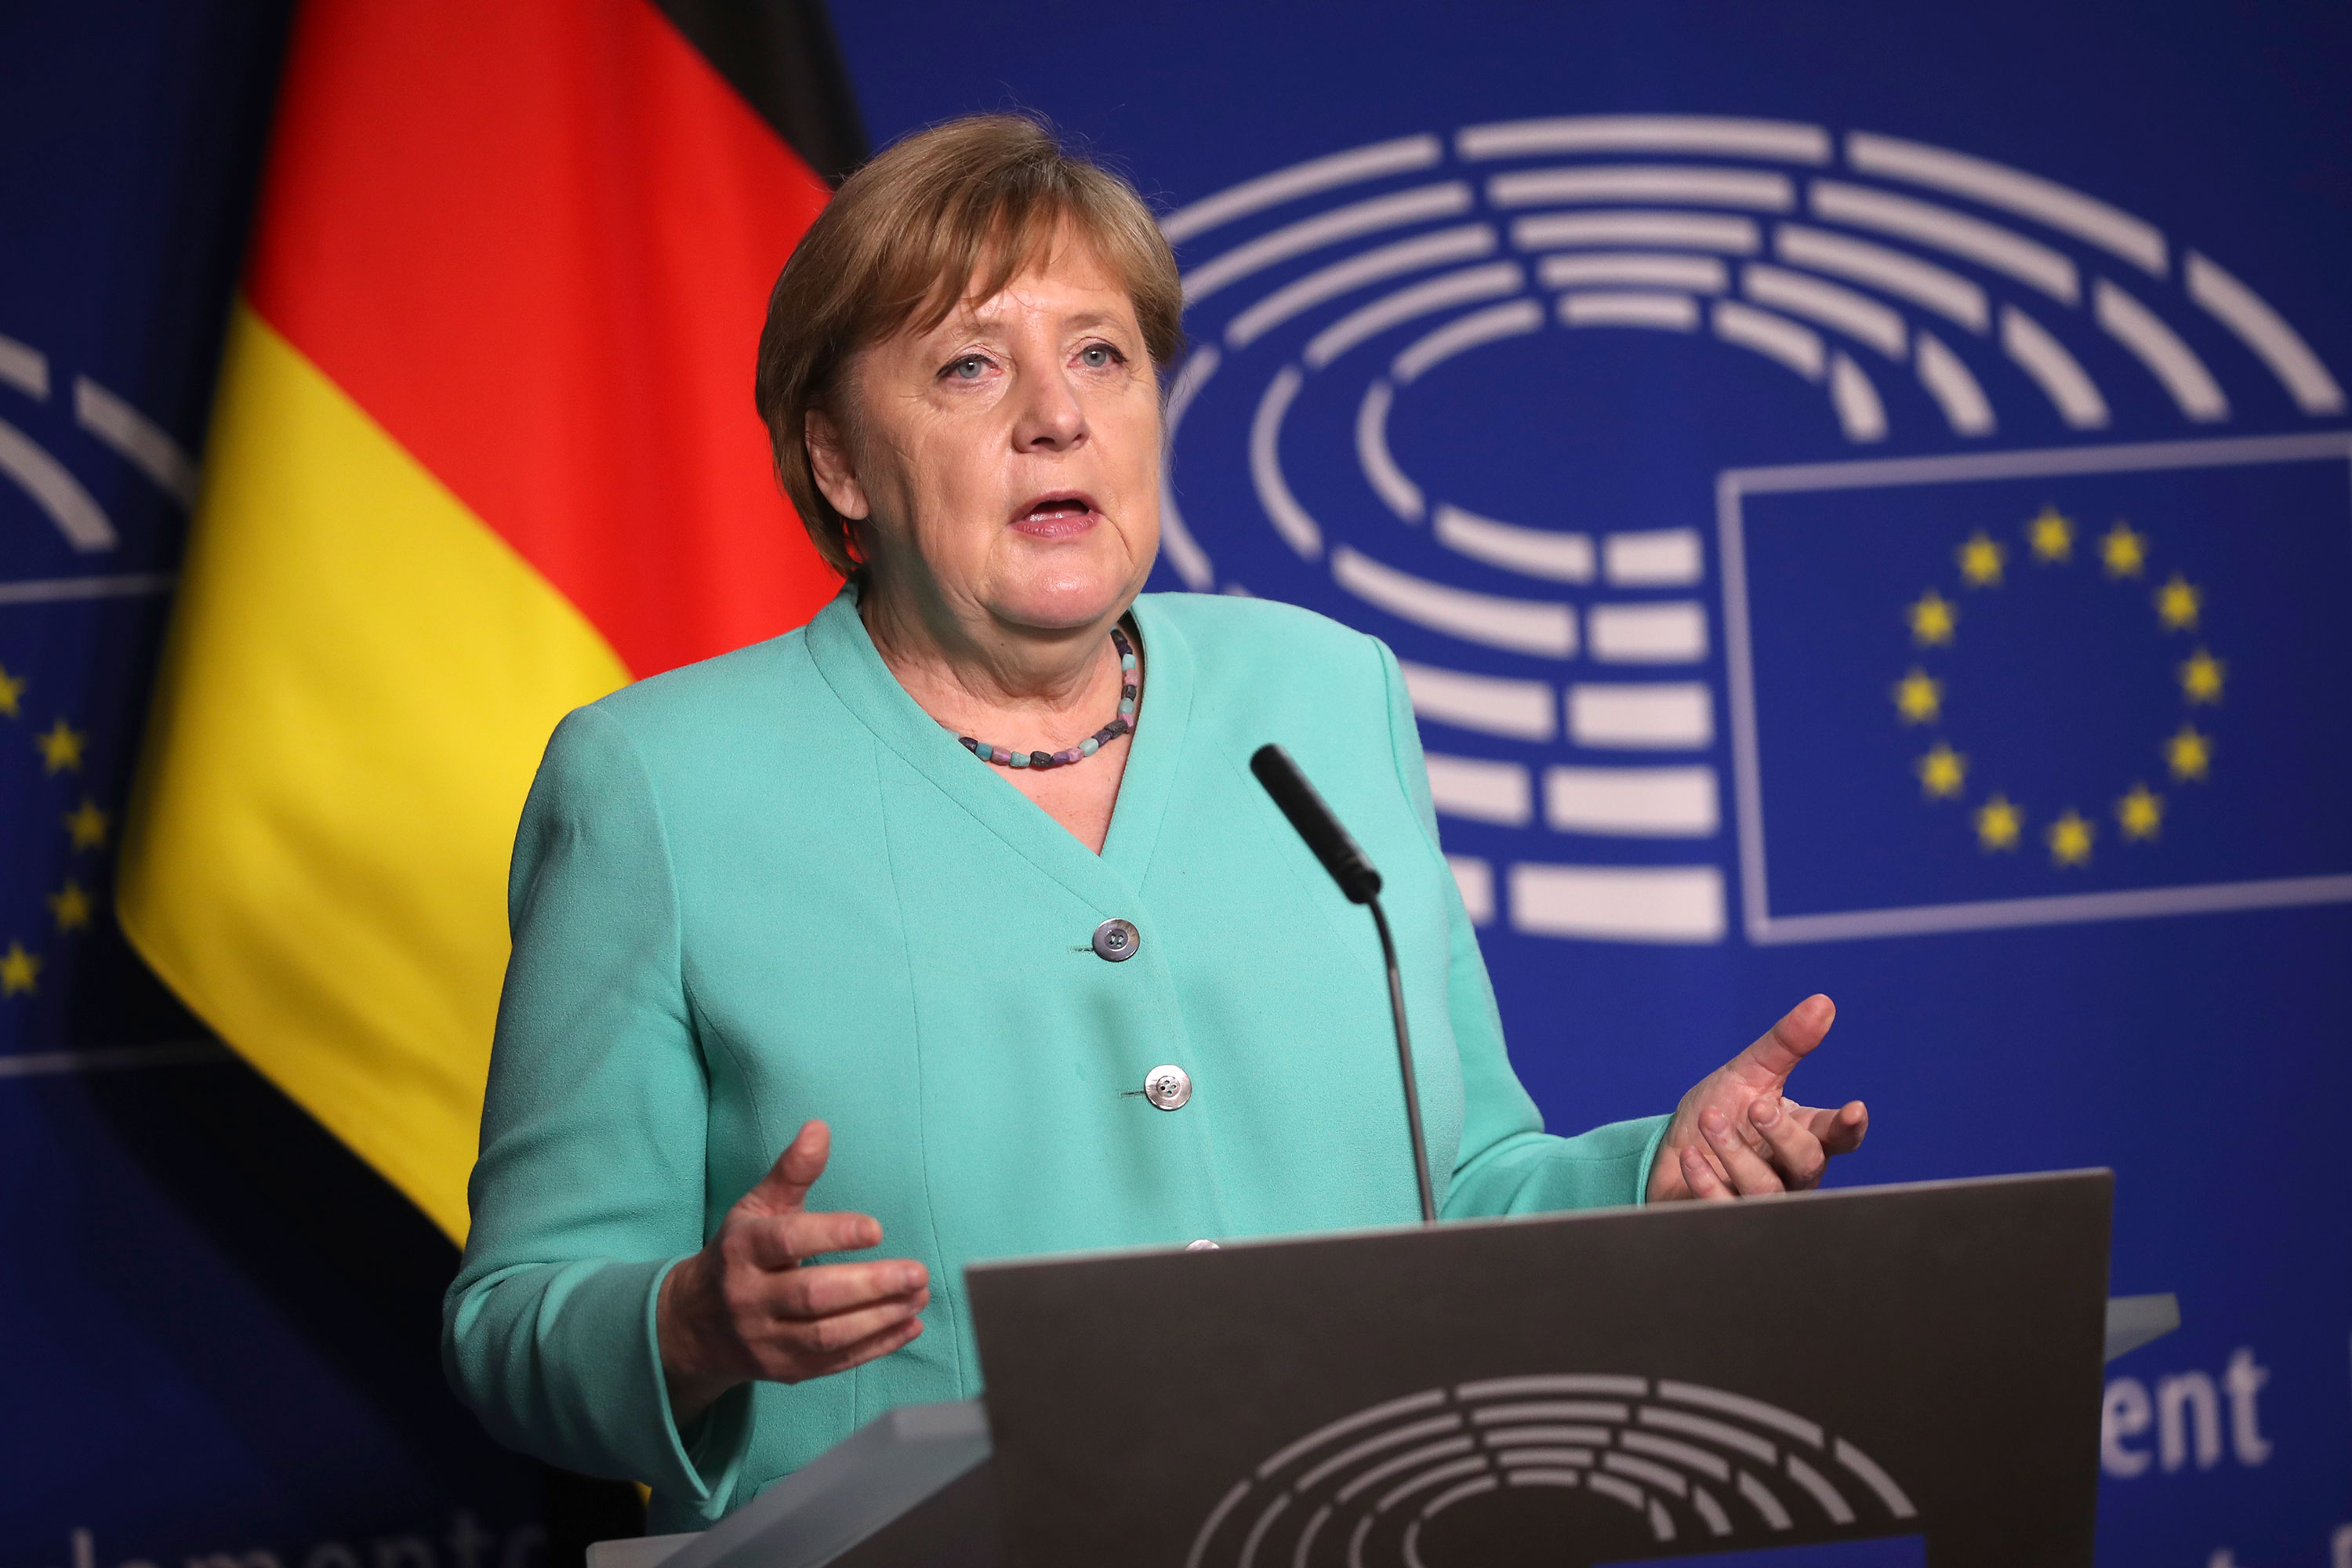 German Chancellor Angela Merkel speaks as she arrives at the European Parliament on July 8 in Brussels, Belgium.